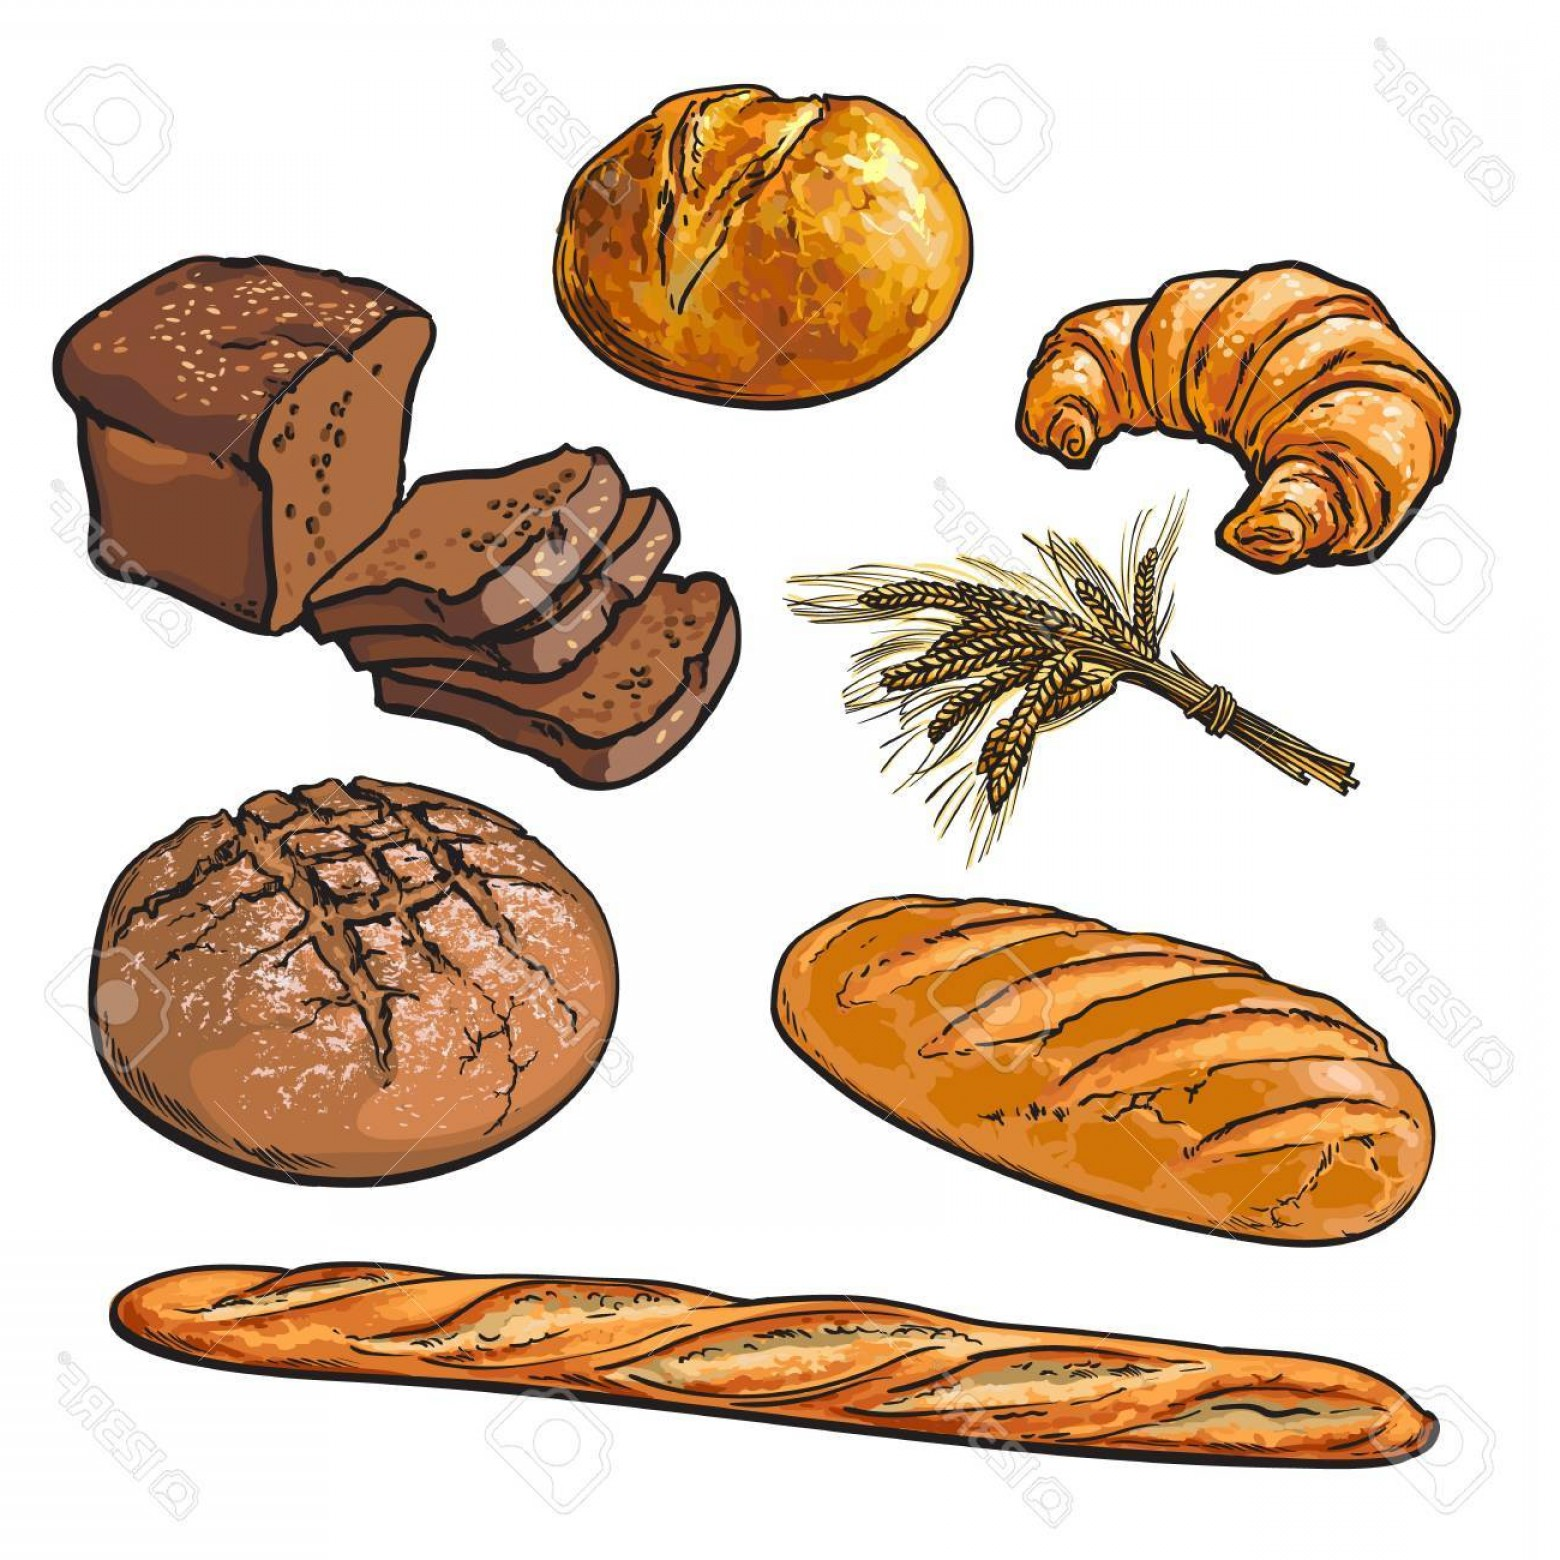 Black and white rye bread baking clipart clip freeuse stock Set Bread Products Pastries Vector On A White Background Sliced Loaf ... clip freeuse stock